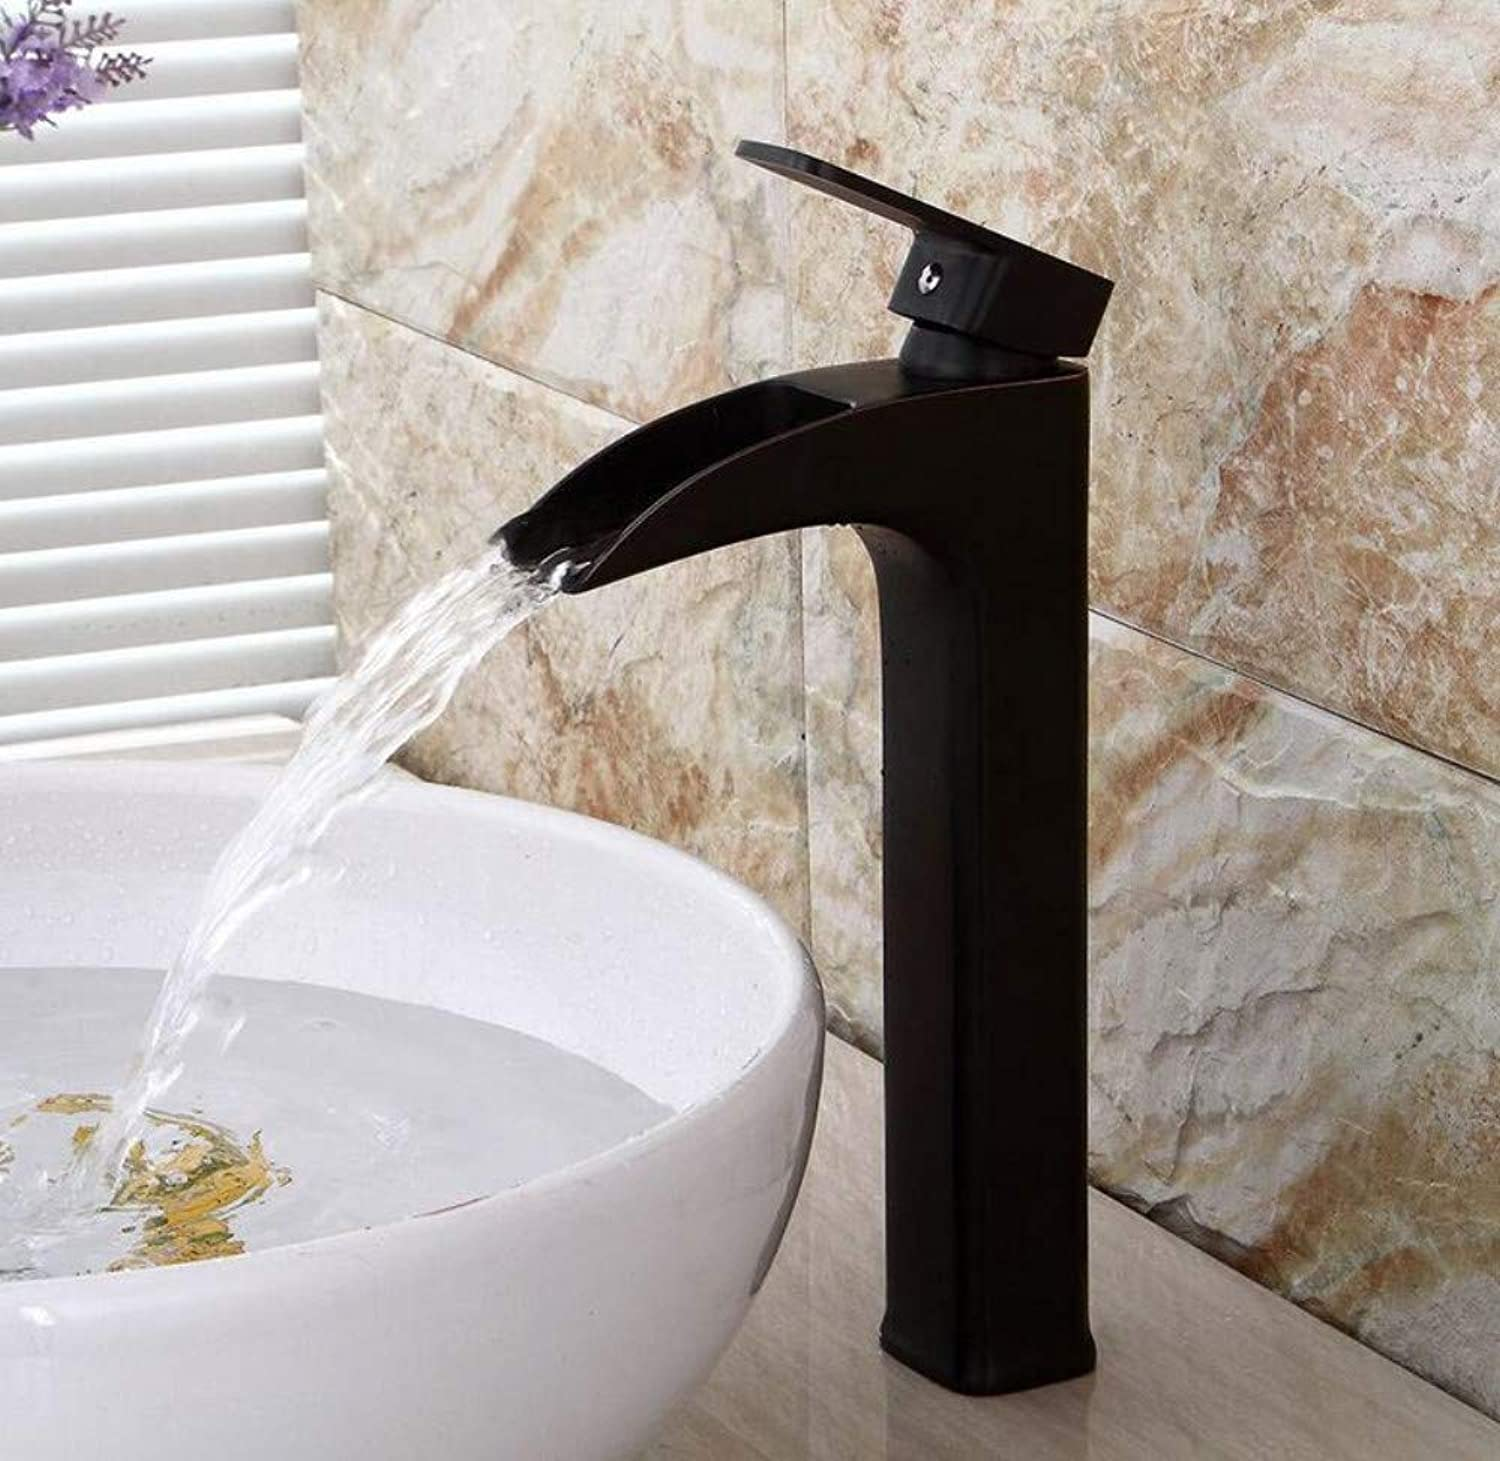 Chrome-Plated Brass Waterfall Faucet Above Counter Basin Hot and Cold Faucet Bathroom Single Washbasin Square Faucet